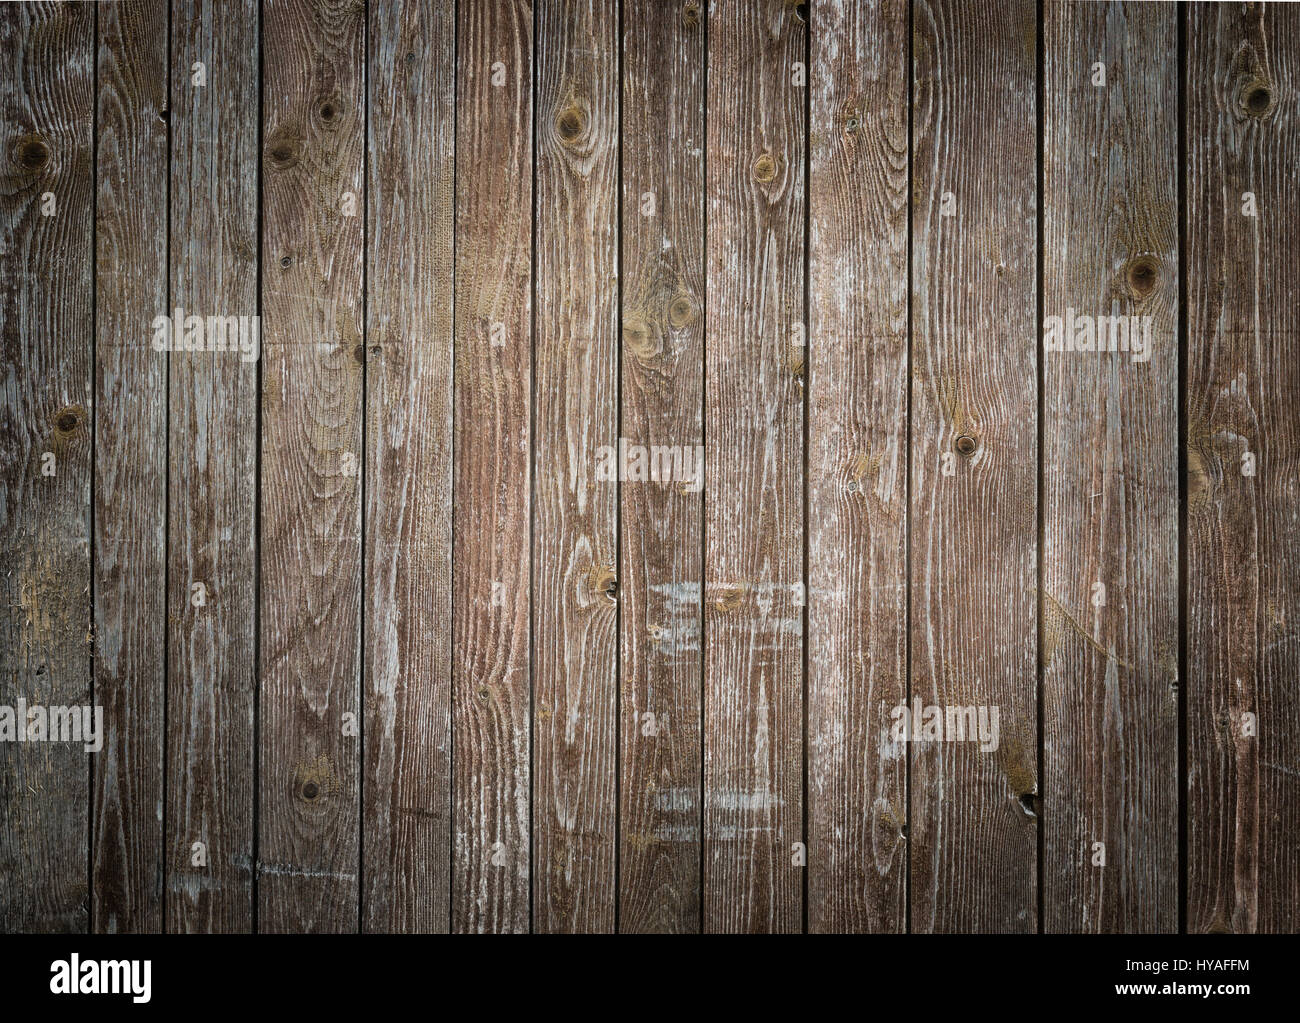 Rustic Wood Planks Background With Nice Vignetting Stock